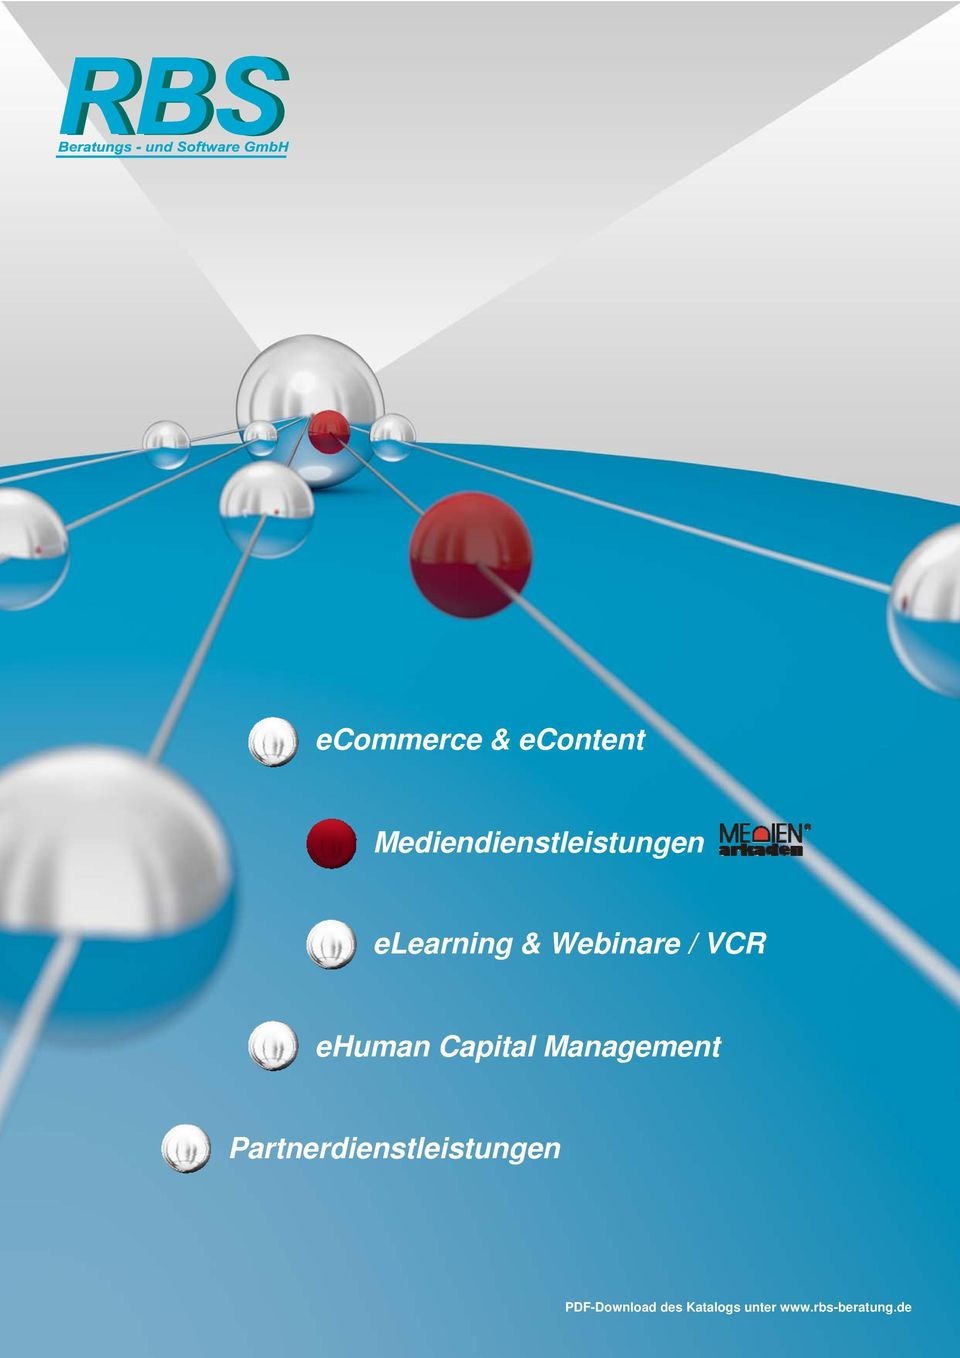 Webinare / VCR ehuman Capital Management